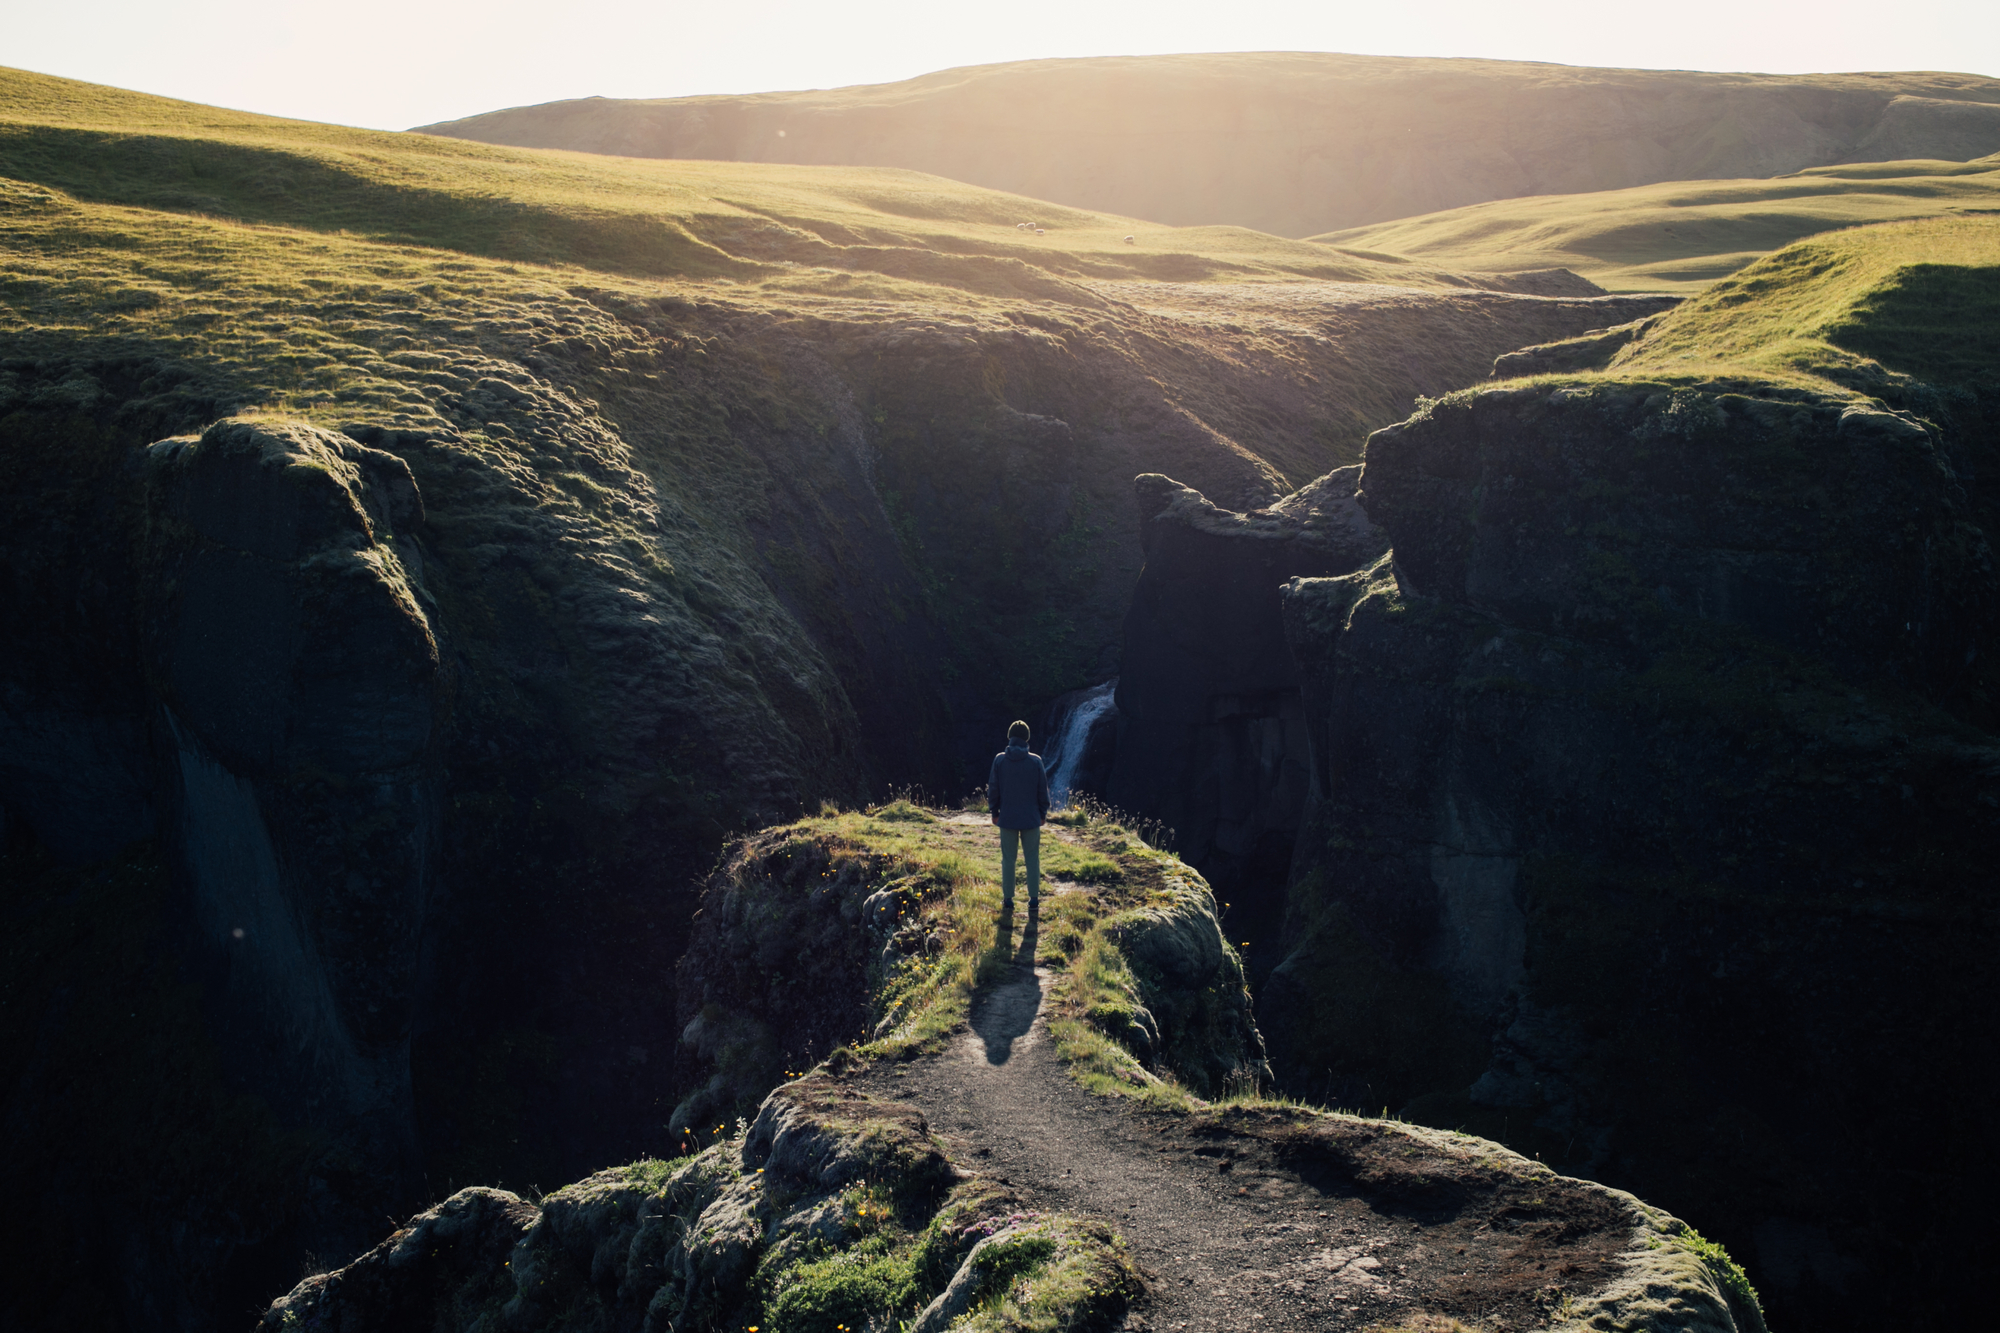 Man alone with nature stock photography